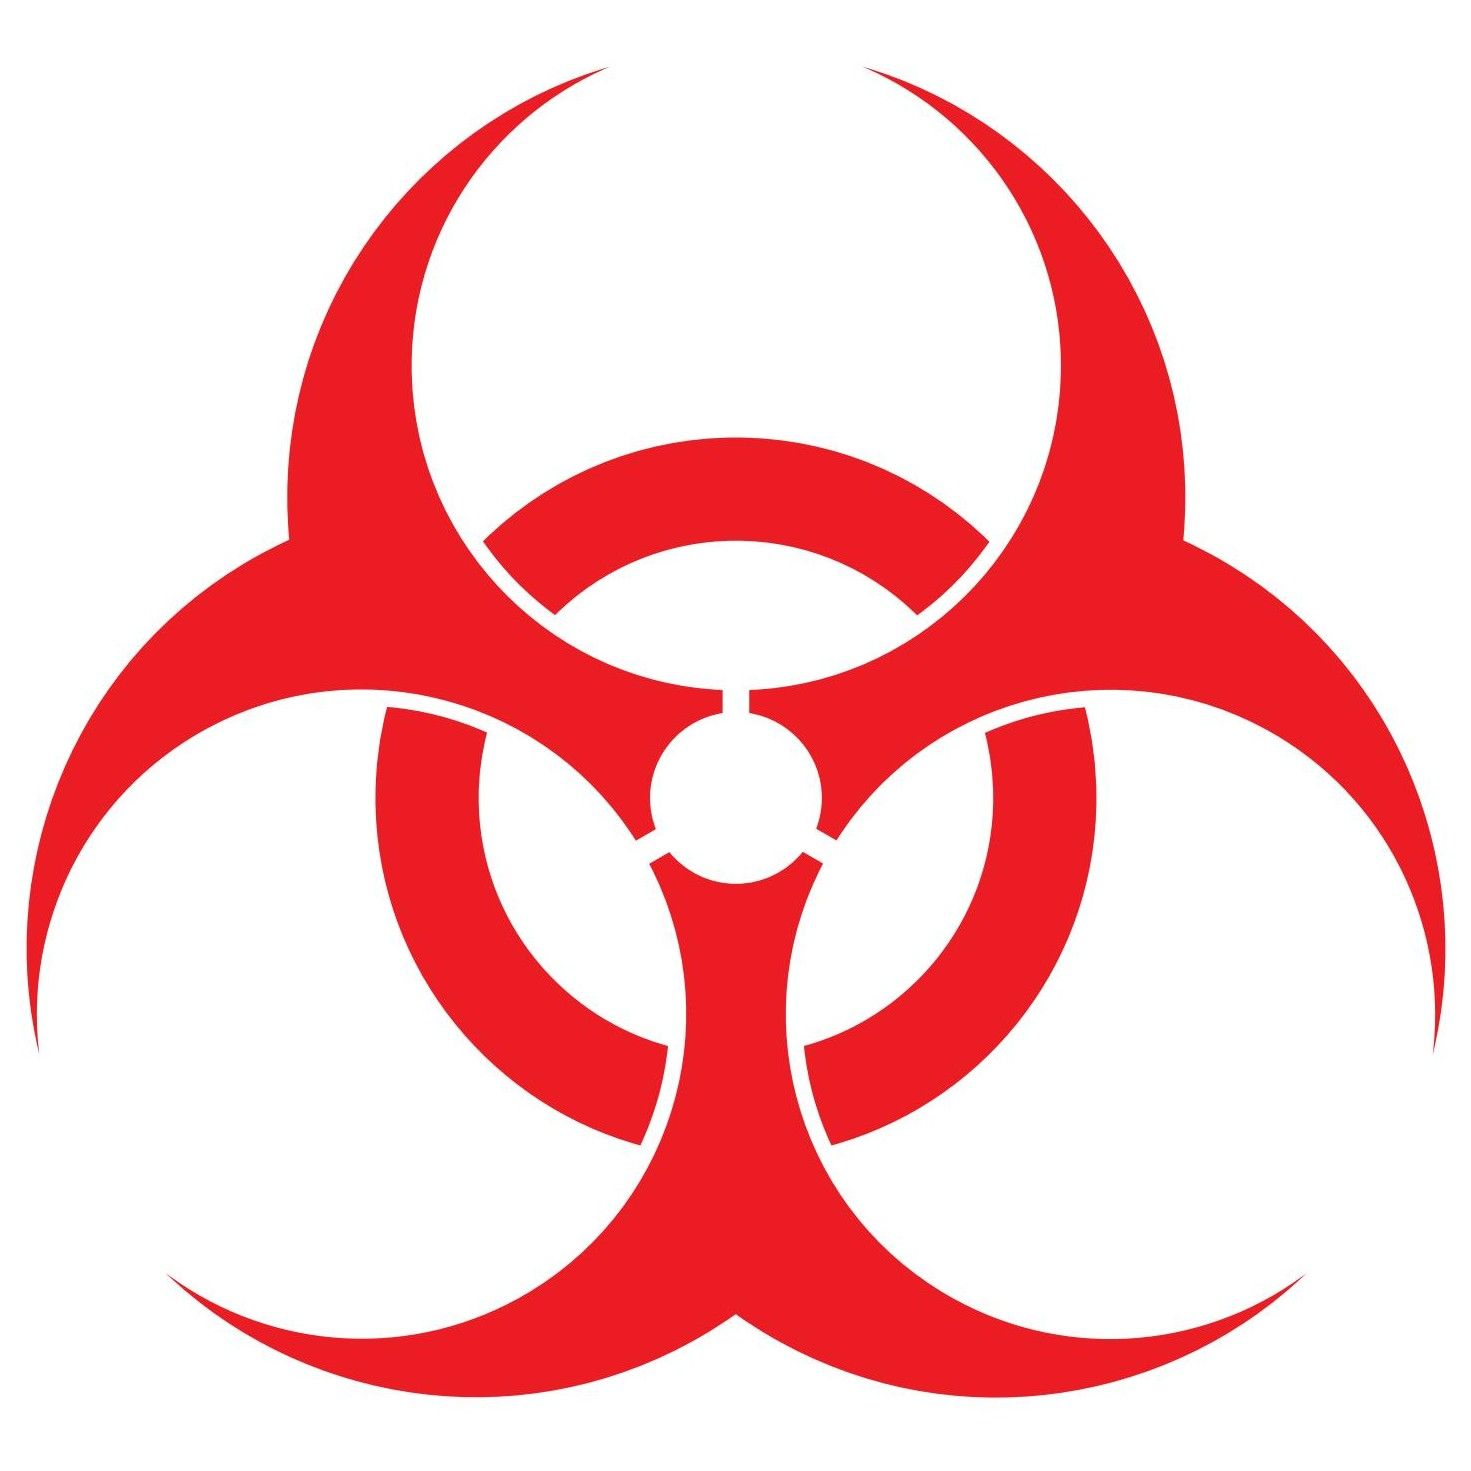 Biohazard symbol red universal labelslogossymbols pinterest biohazard symbol red biocorpaavc Image collections